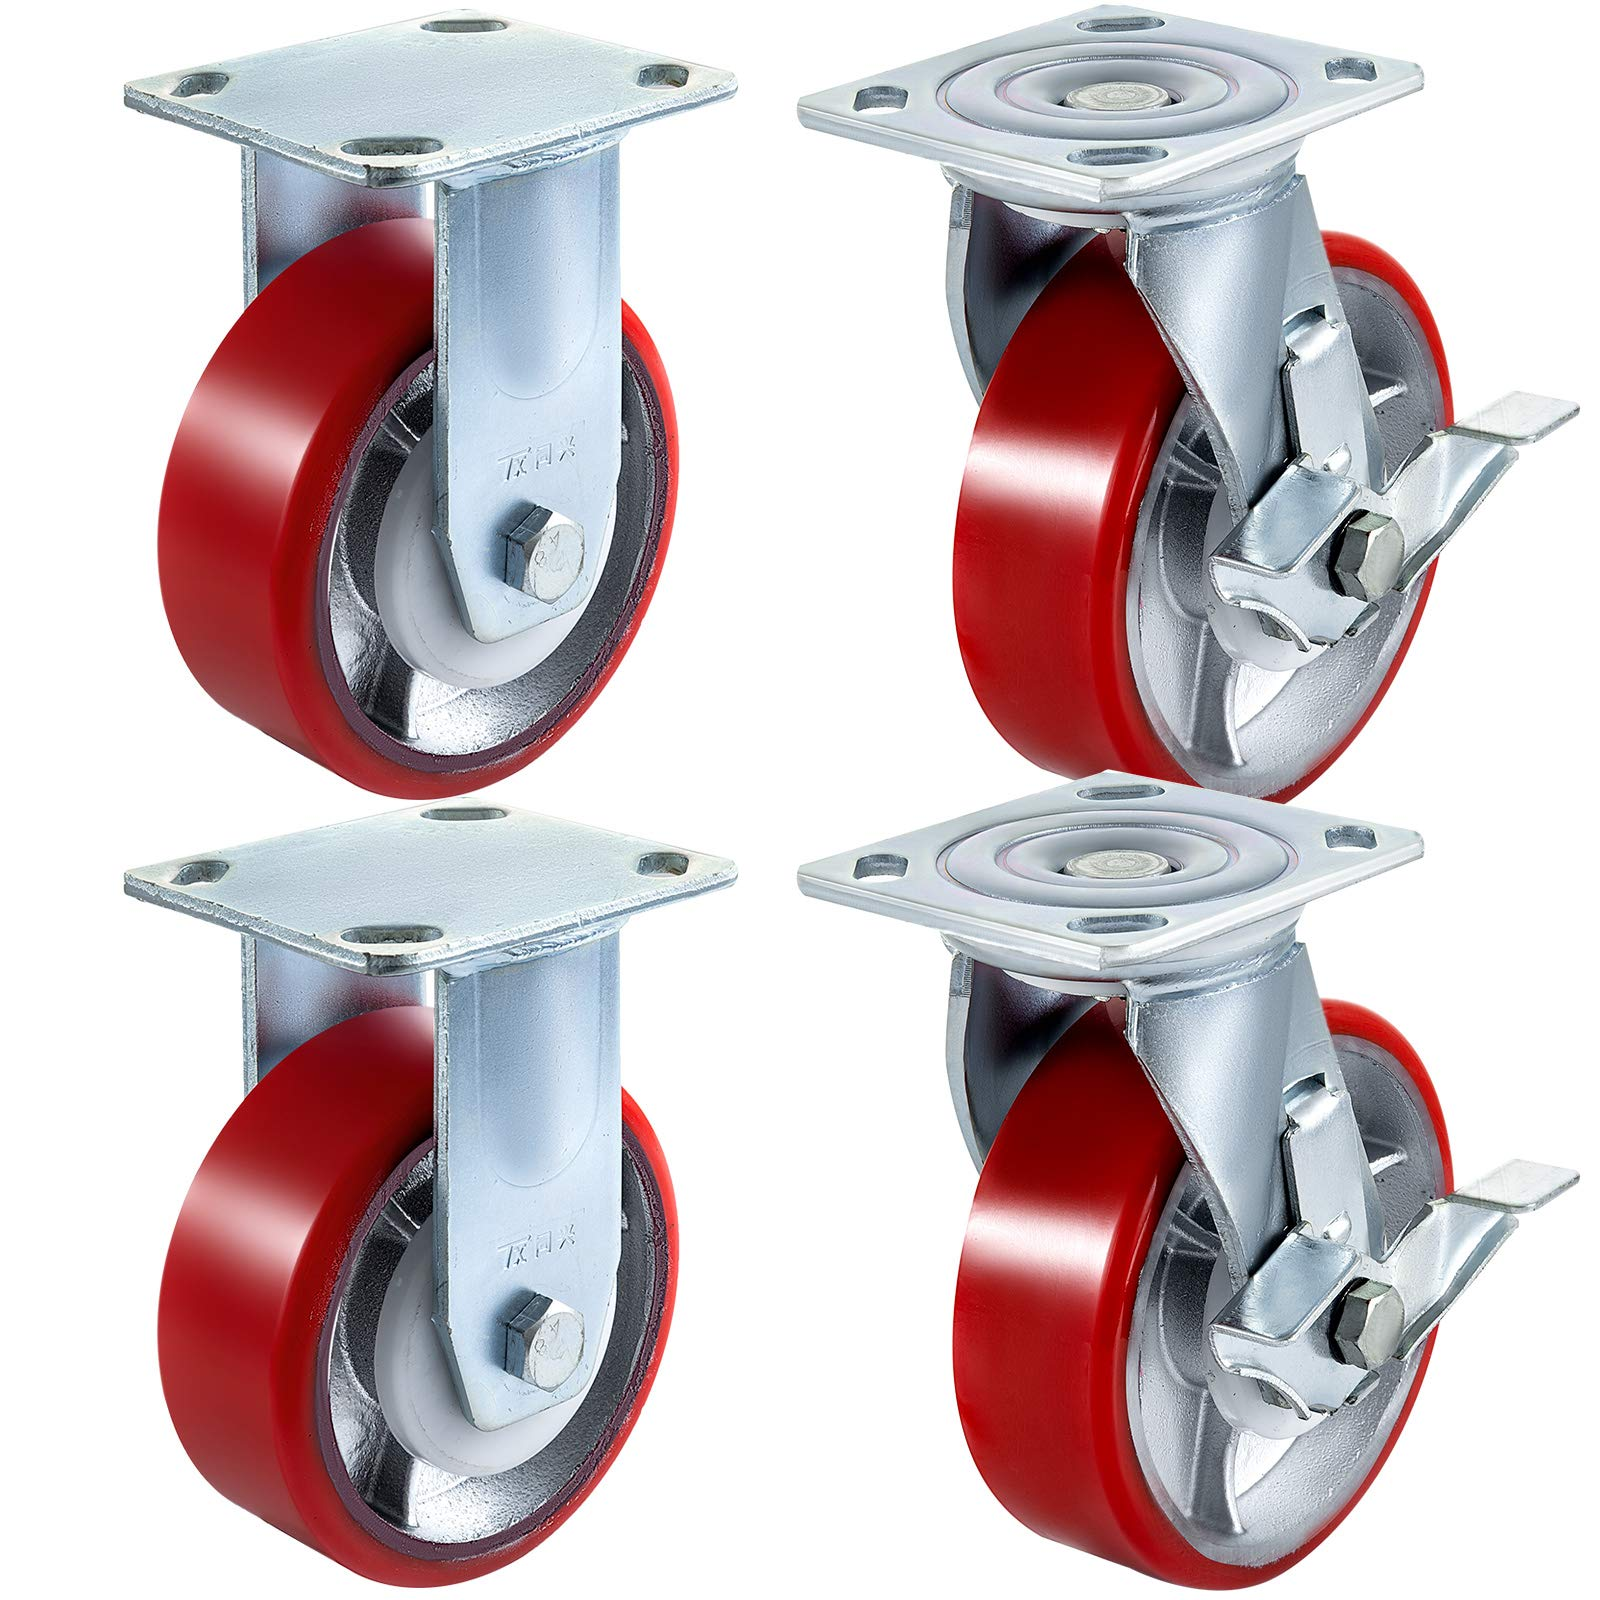 BestEquip 4 Pack 6'' x 2'' Caster Wheels 2 Rigid & 2 Swivel Casterswith Side Brake Polyurethane Heavy Duty Casters Iron Core Plate 1000LBS Capacity Per Wheel for Warehousing and Industrial Equipment